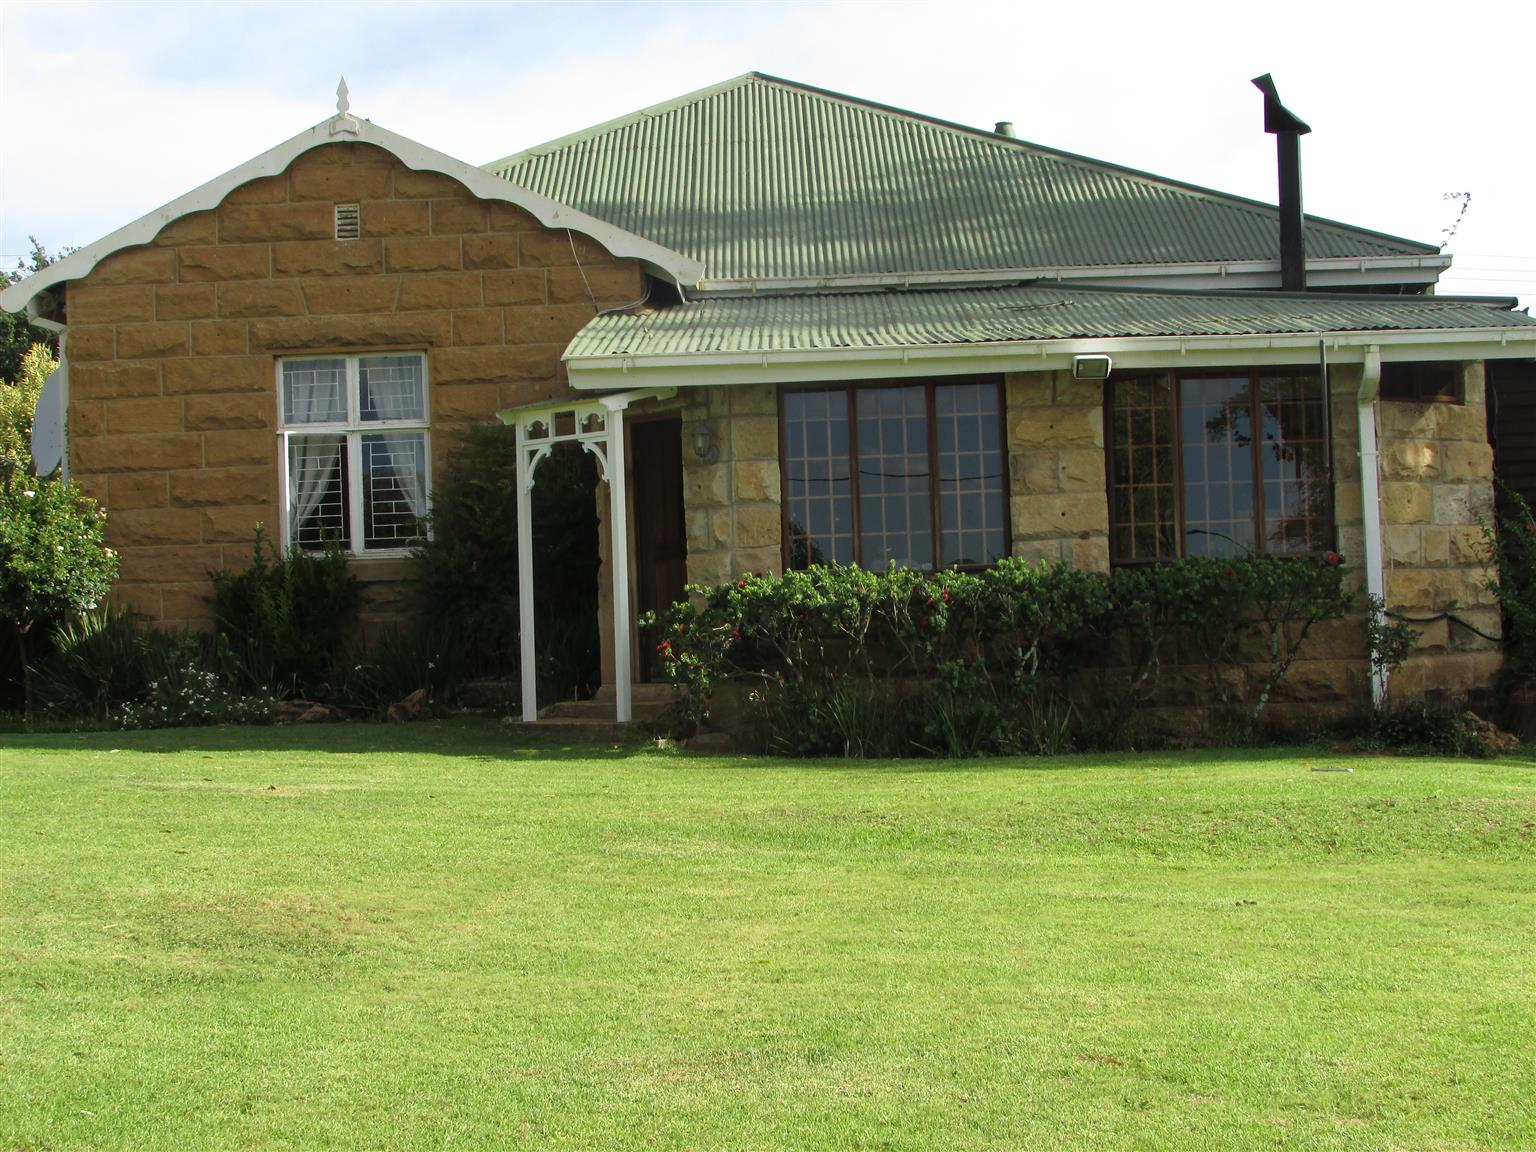 Gracious Old Sandstone Home for Sale